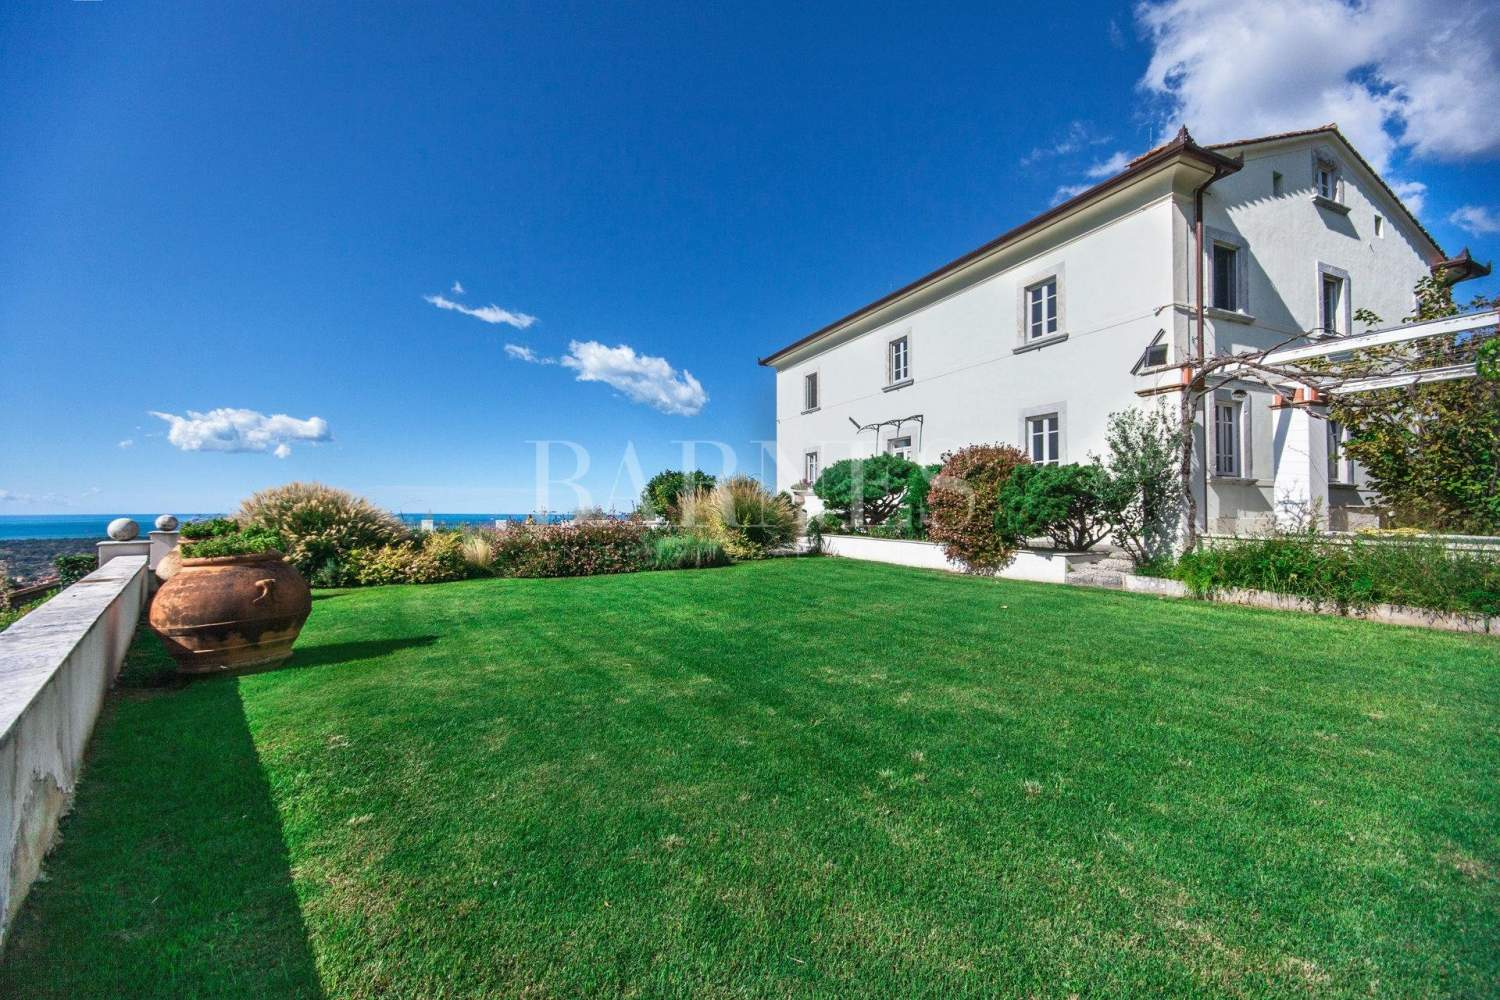 Villa with panoramic views on the sea and mountains, swimming pool picture 1